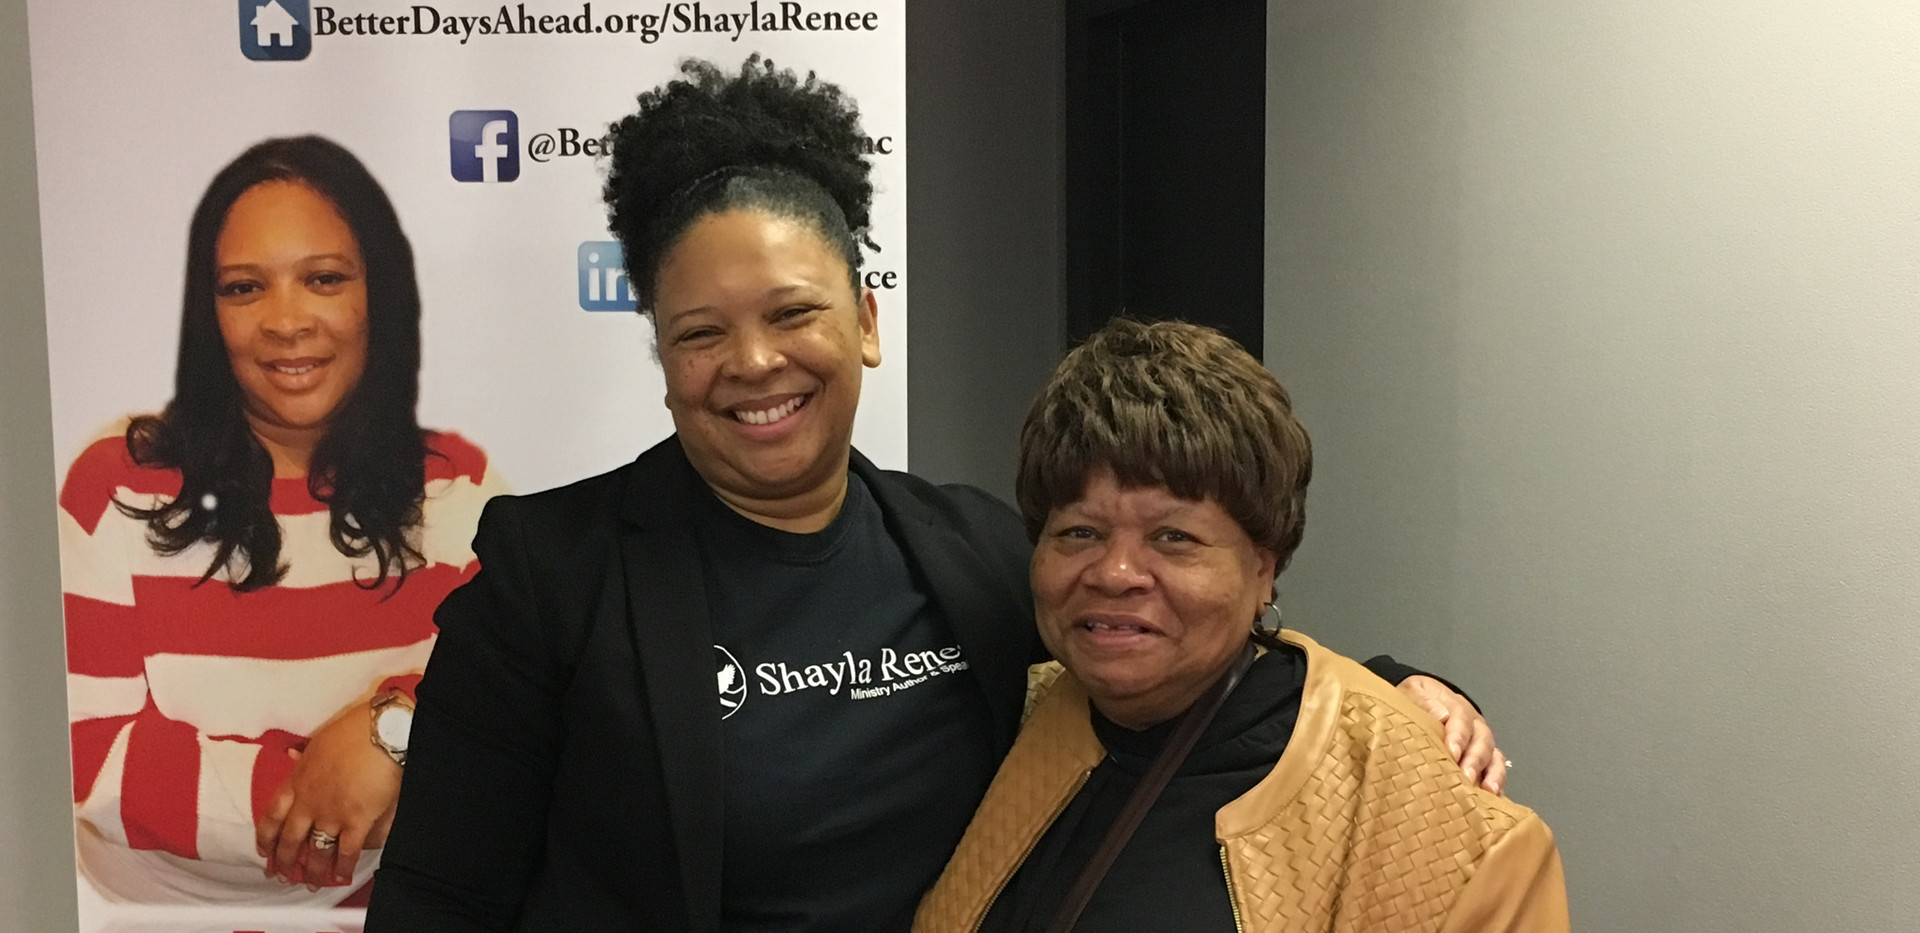 Love for HASML at Redefining HERstory Conference